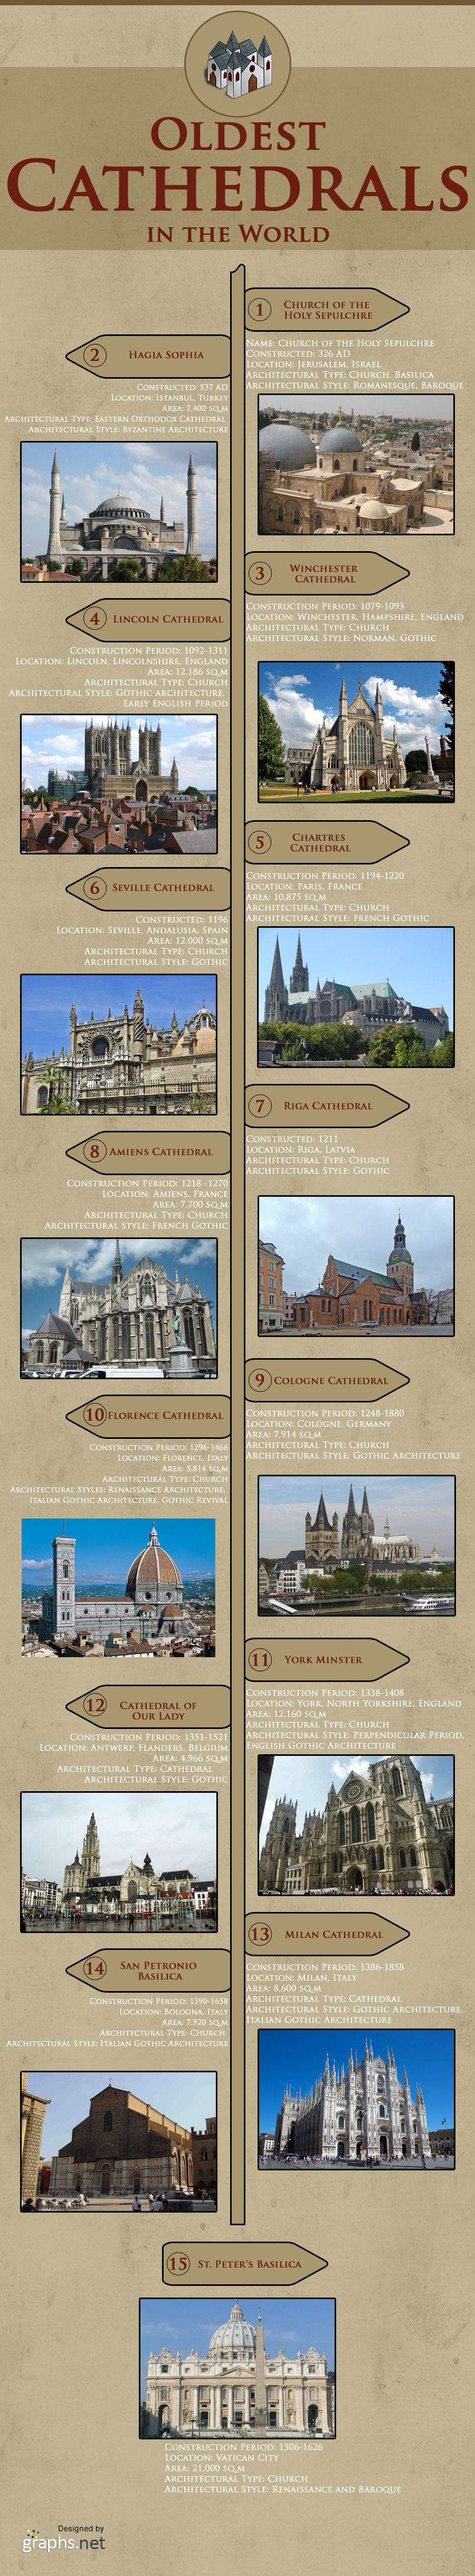 Oldest Cathedrals in the World